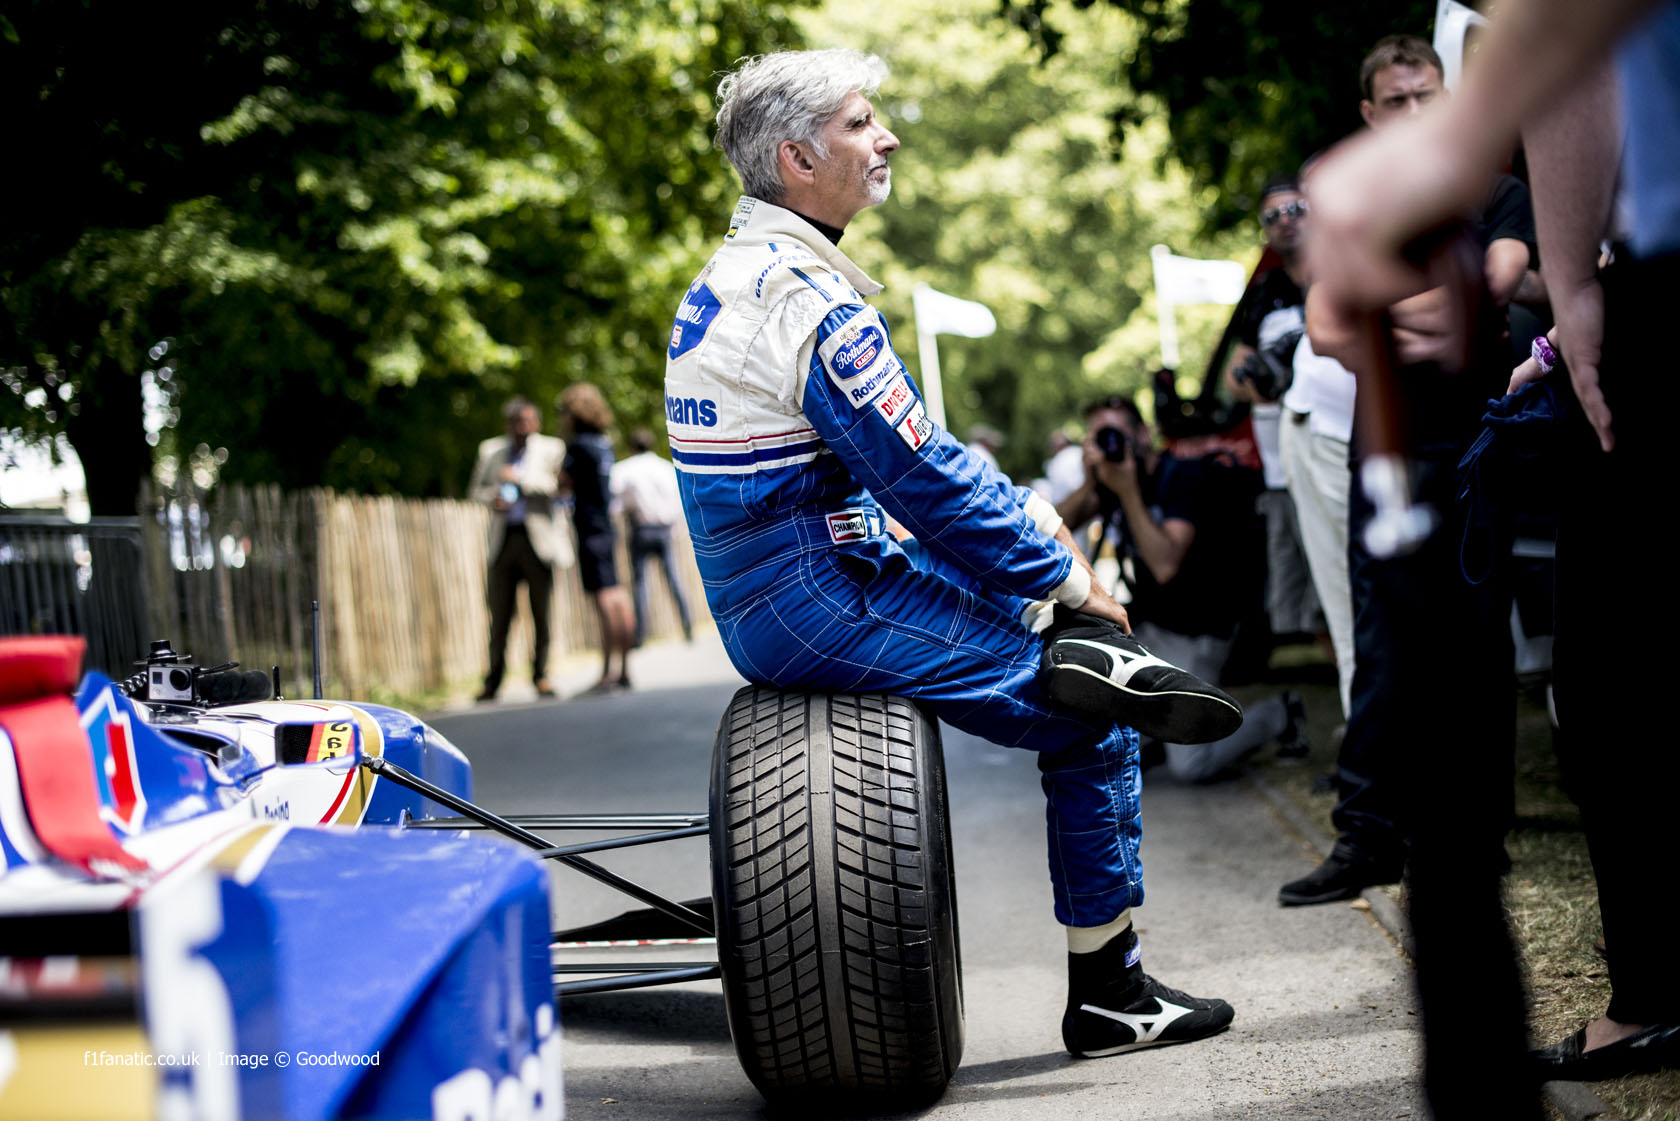 Damon Hill (2), Goodwood Festival of Speed, 2014